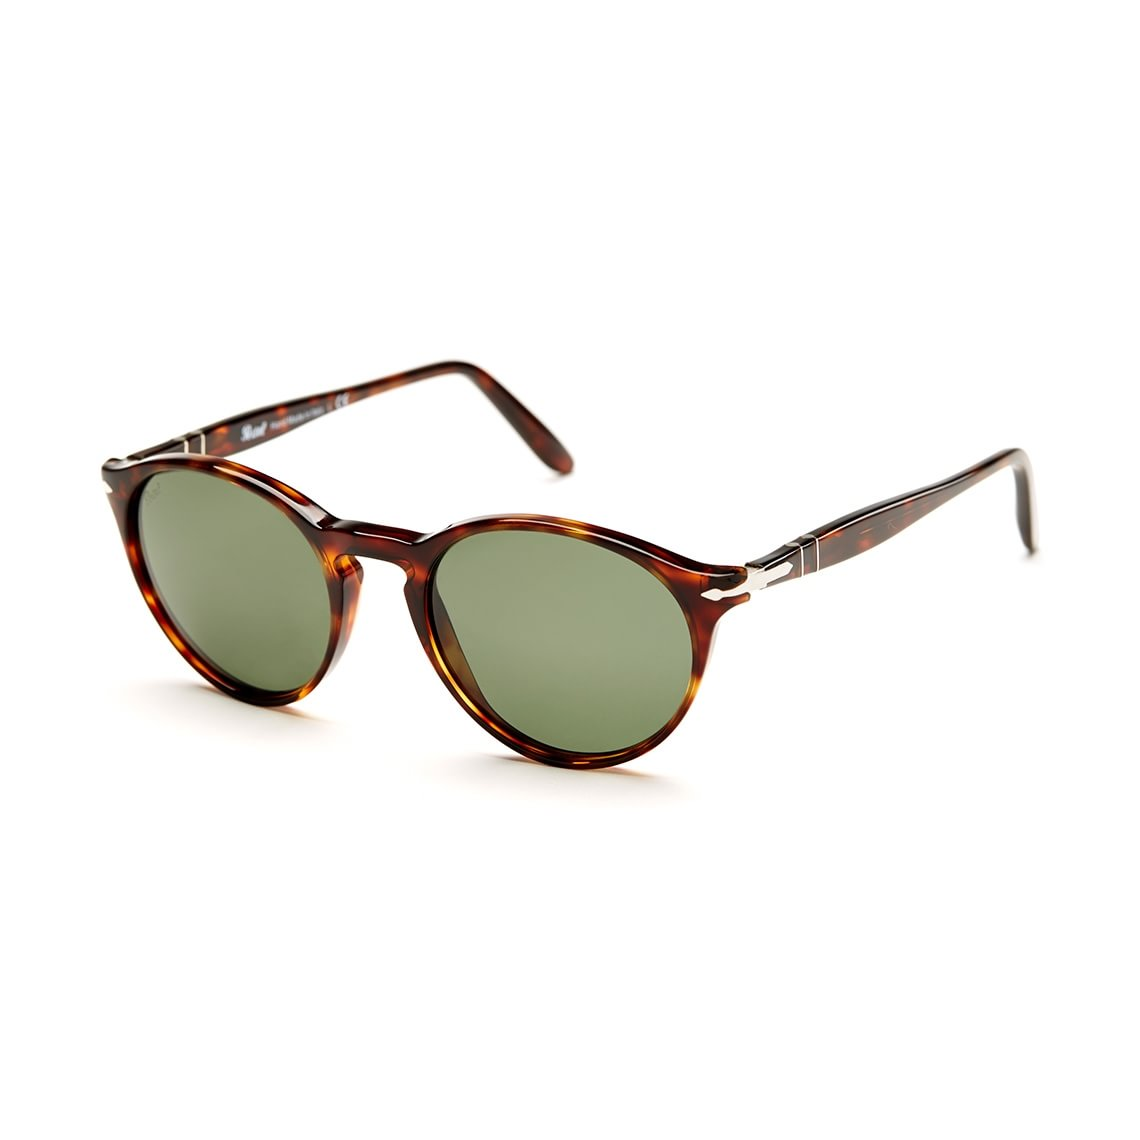 Persol 3092-S-M 9015/31 50-19